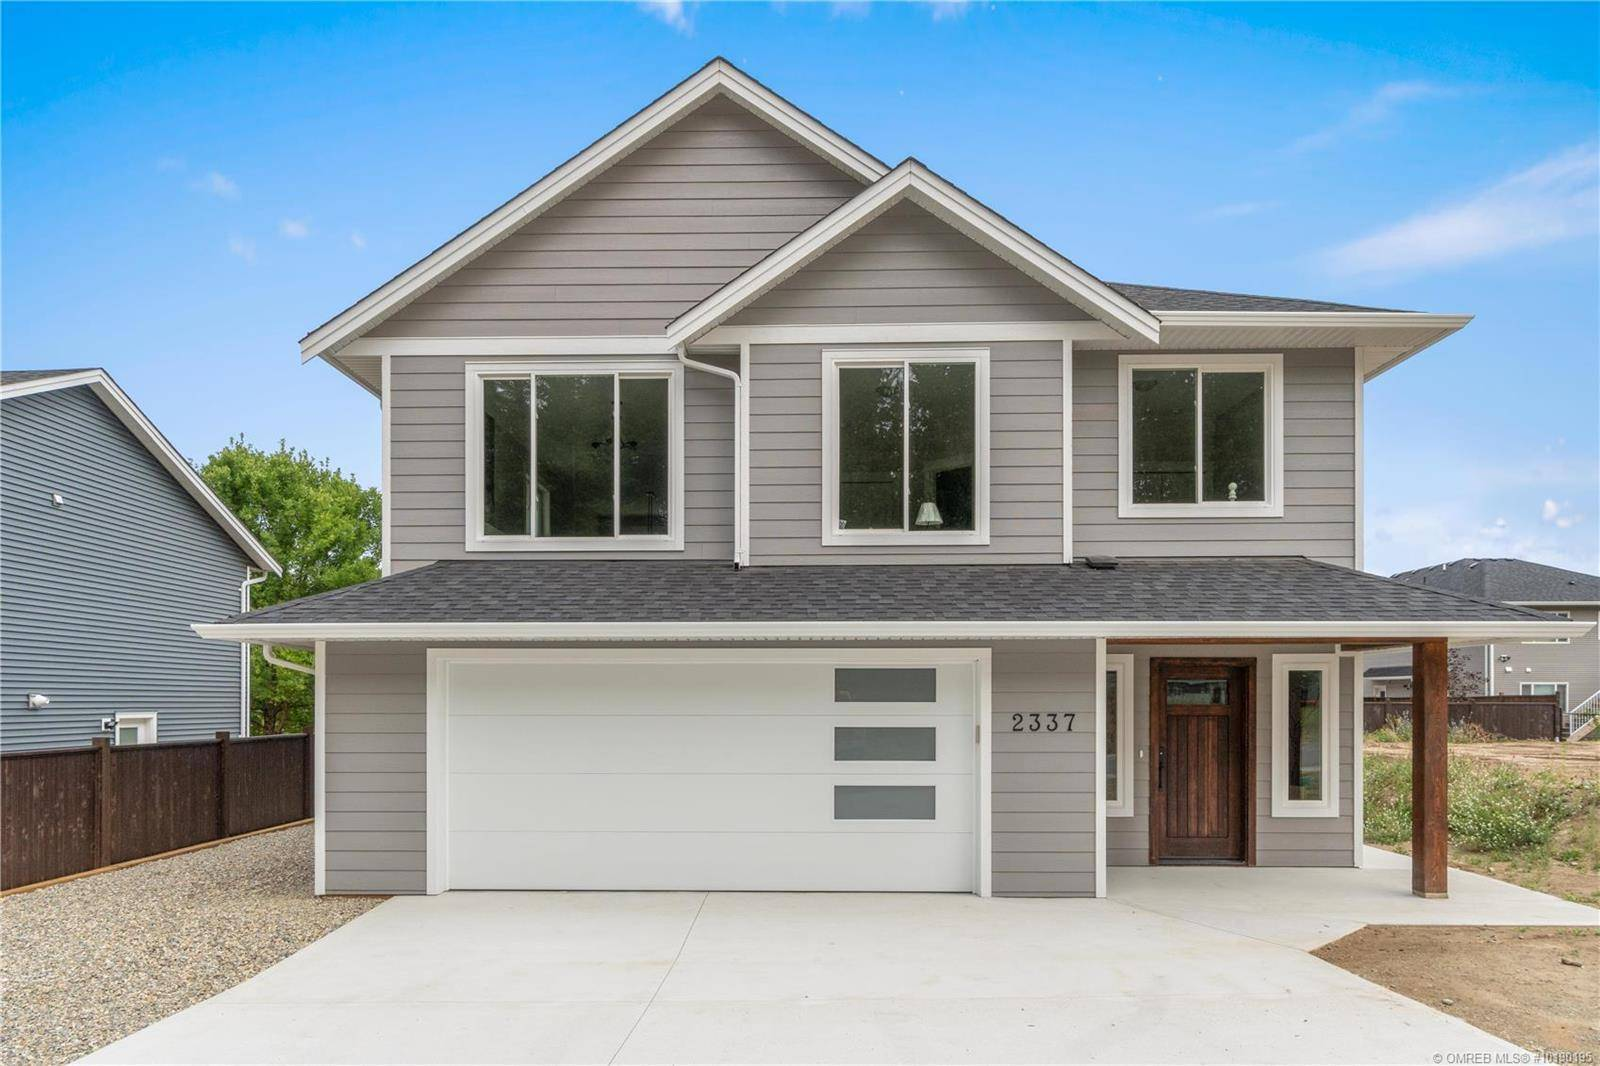 House for sale at 2337 5 Ave Southeast Salmon Arm British Columbia - MLS: 10190195